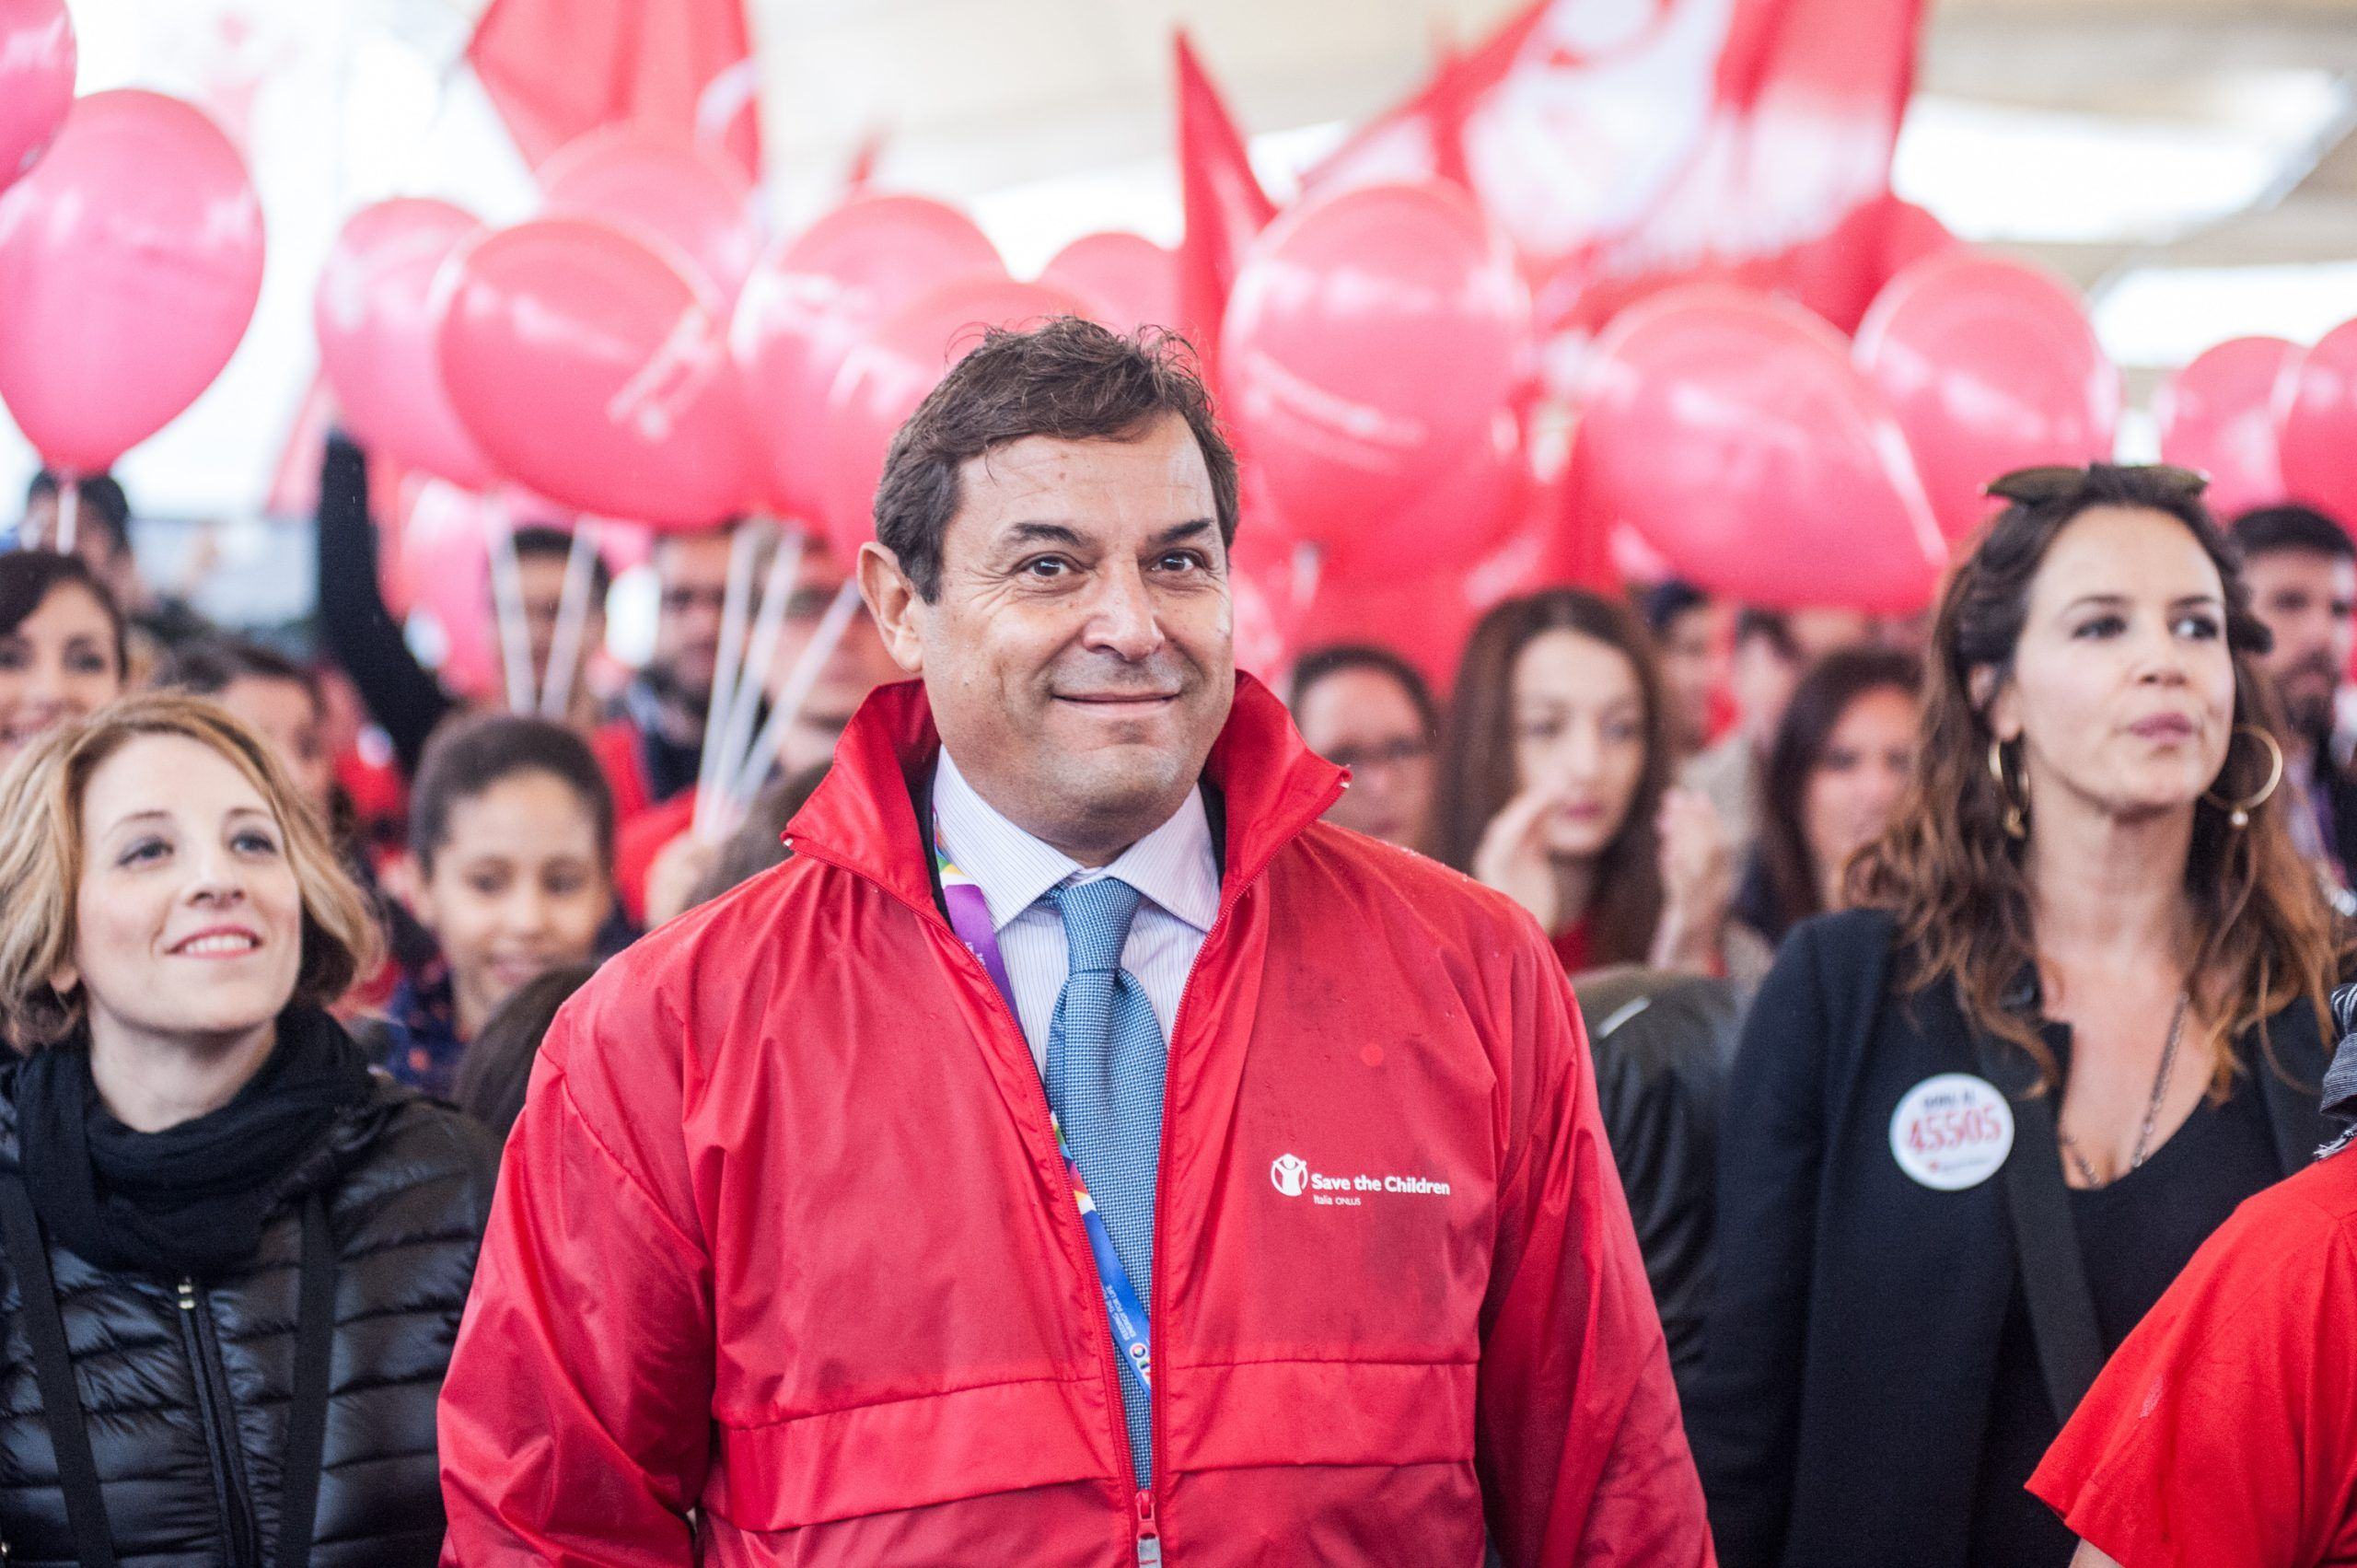 Save the Children day a Expo Milano 2015